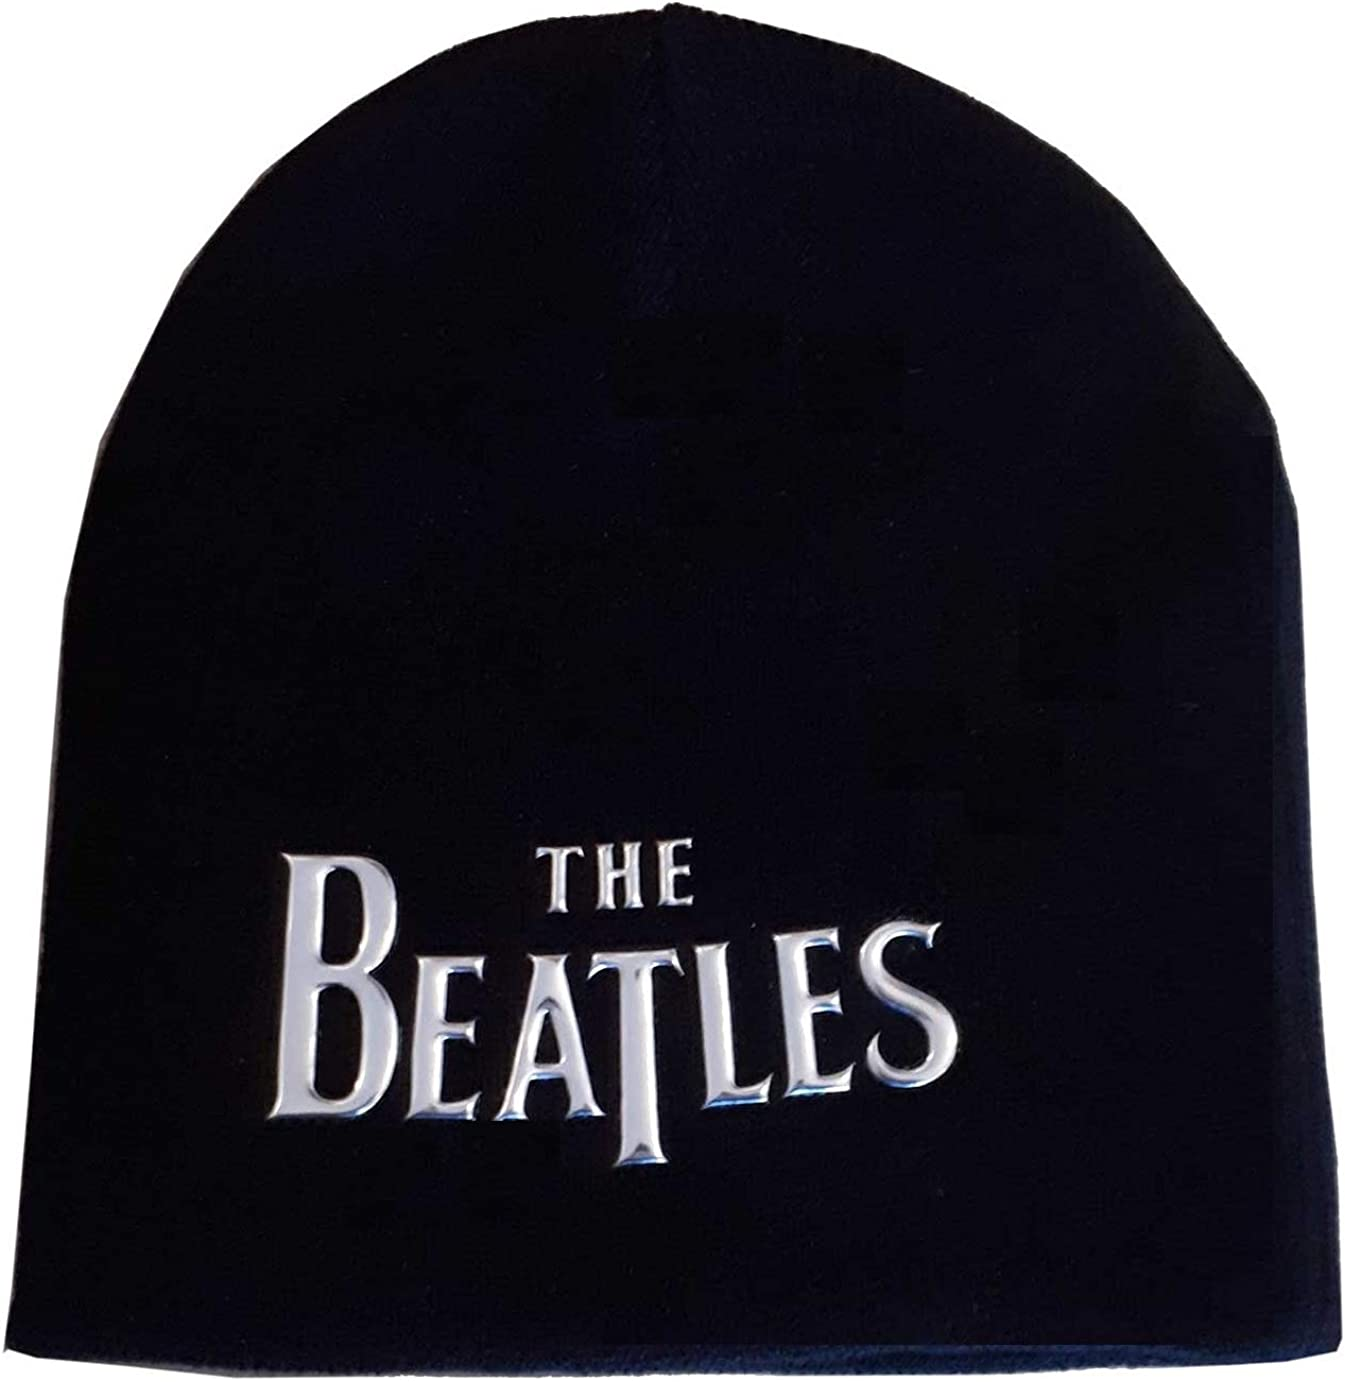 Beatles shipfree Beanie Sonic Silver Drop T Hat Knit Black Cheap mail order sales Logo Skully